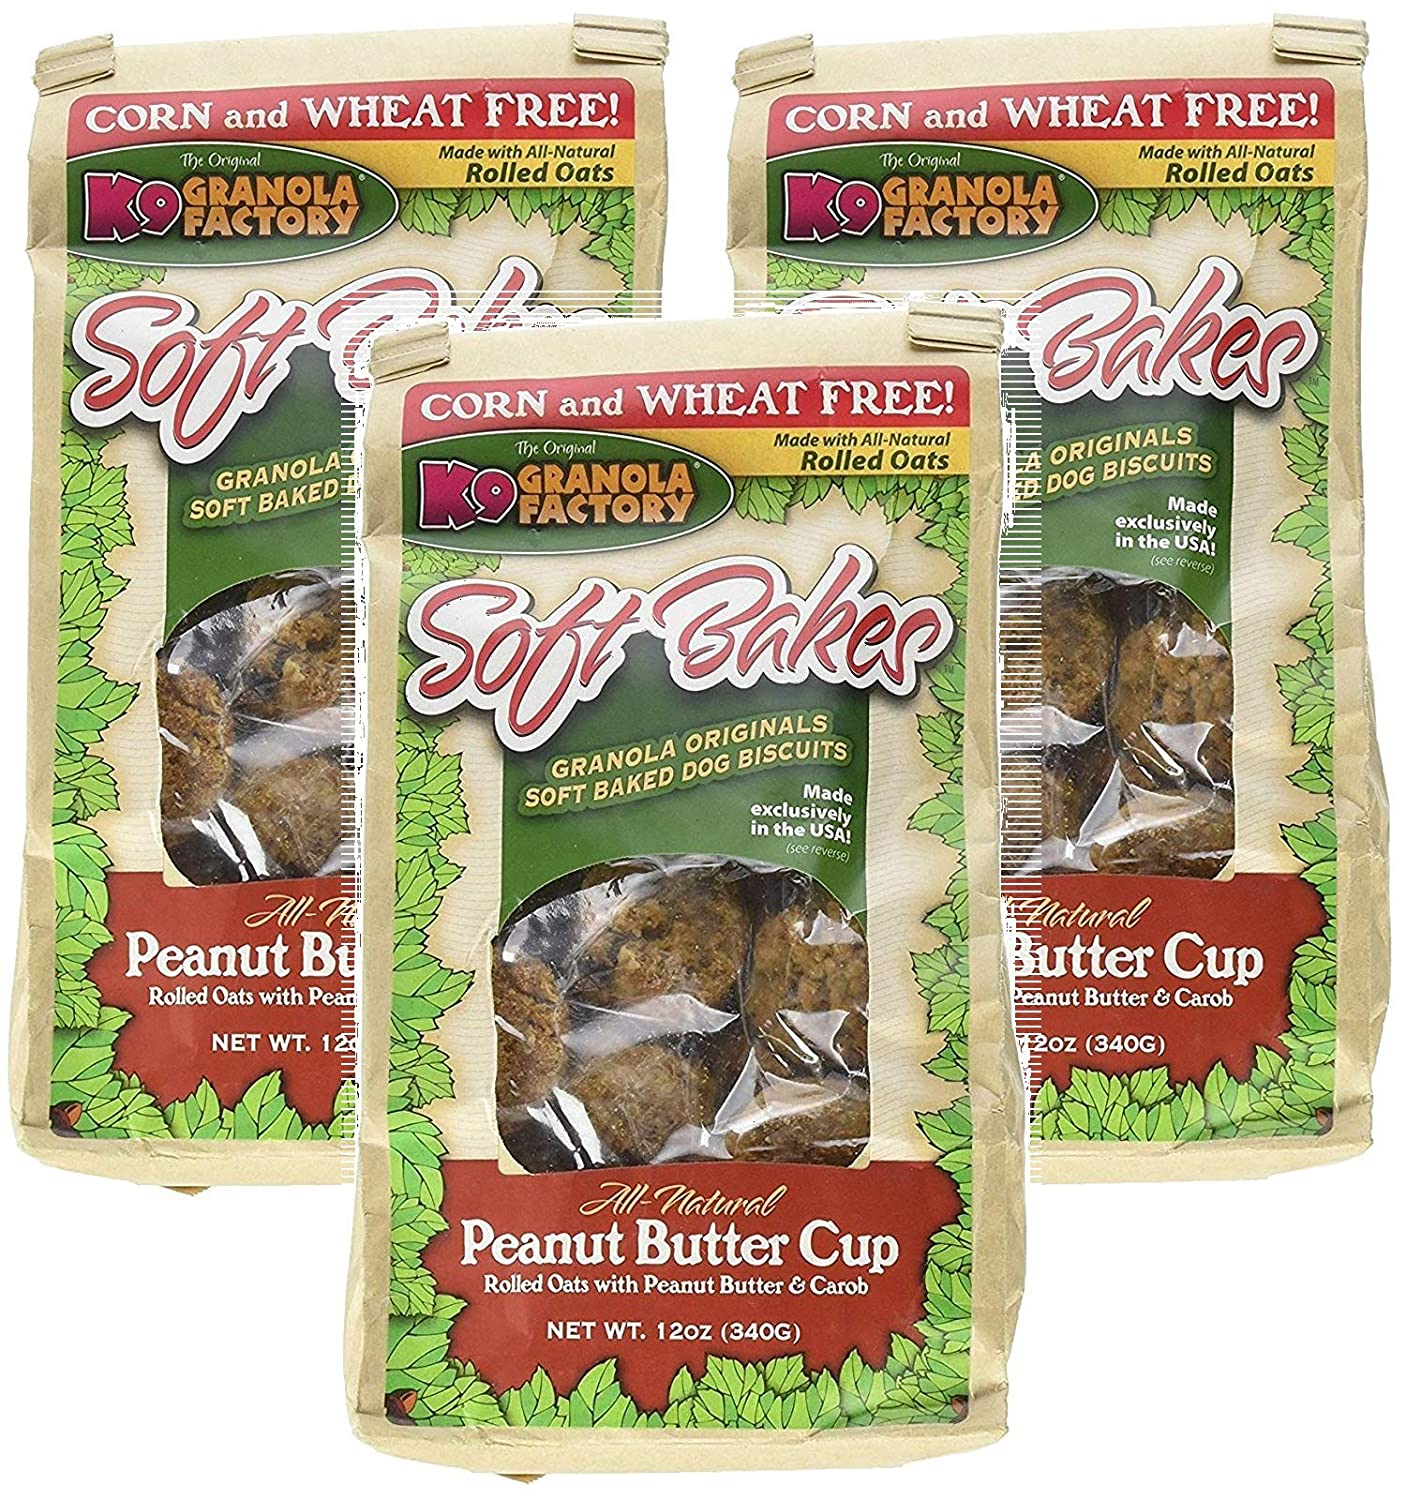 K9 Granola Factory 3 Pack of Soft Bakes Peanut Butter Cup Dog Biscuits, 12 Ounces Per Pack